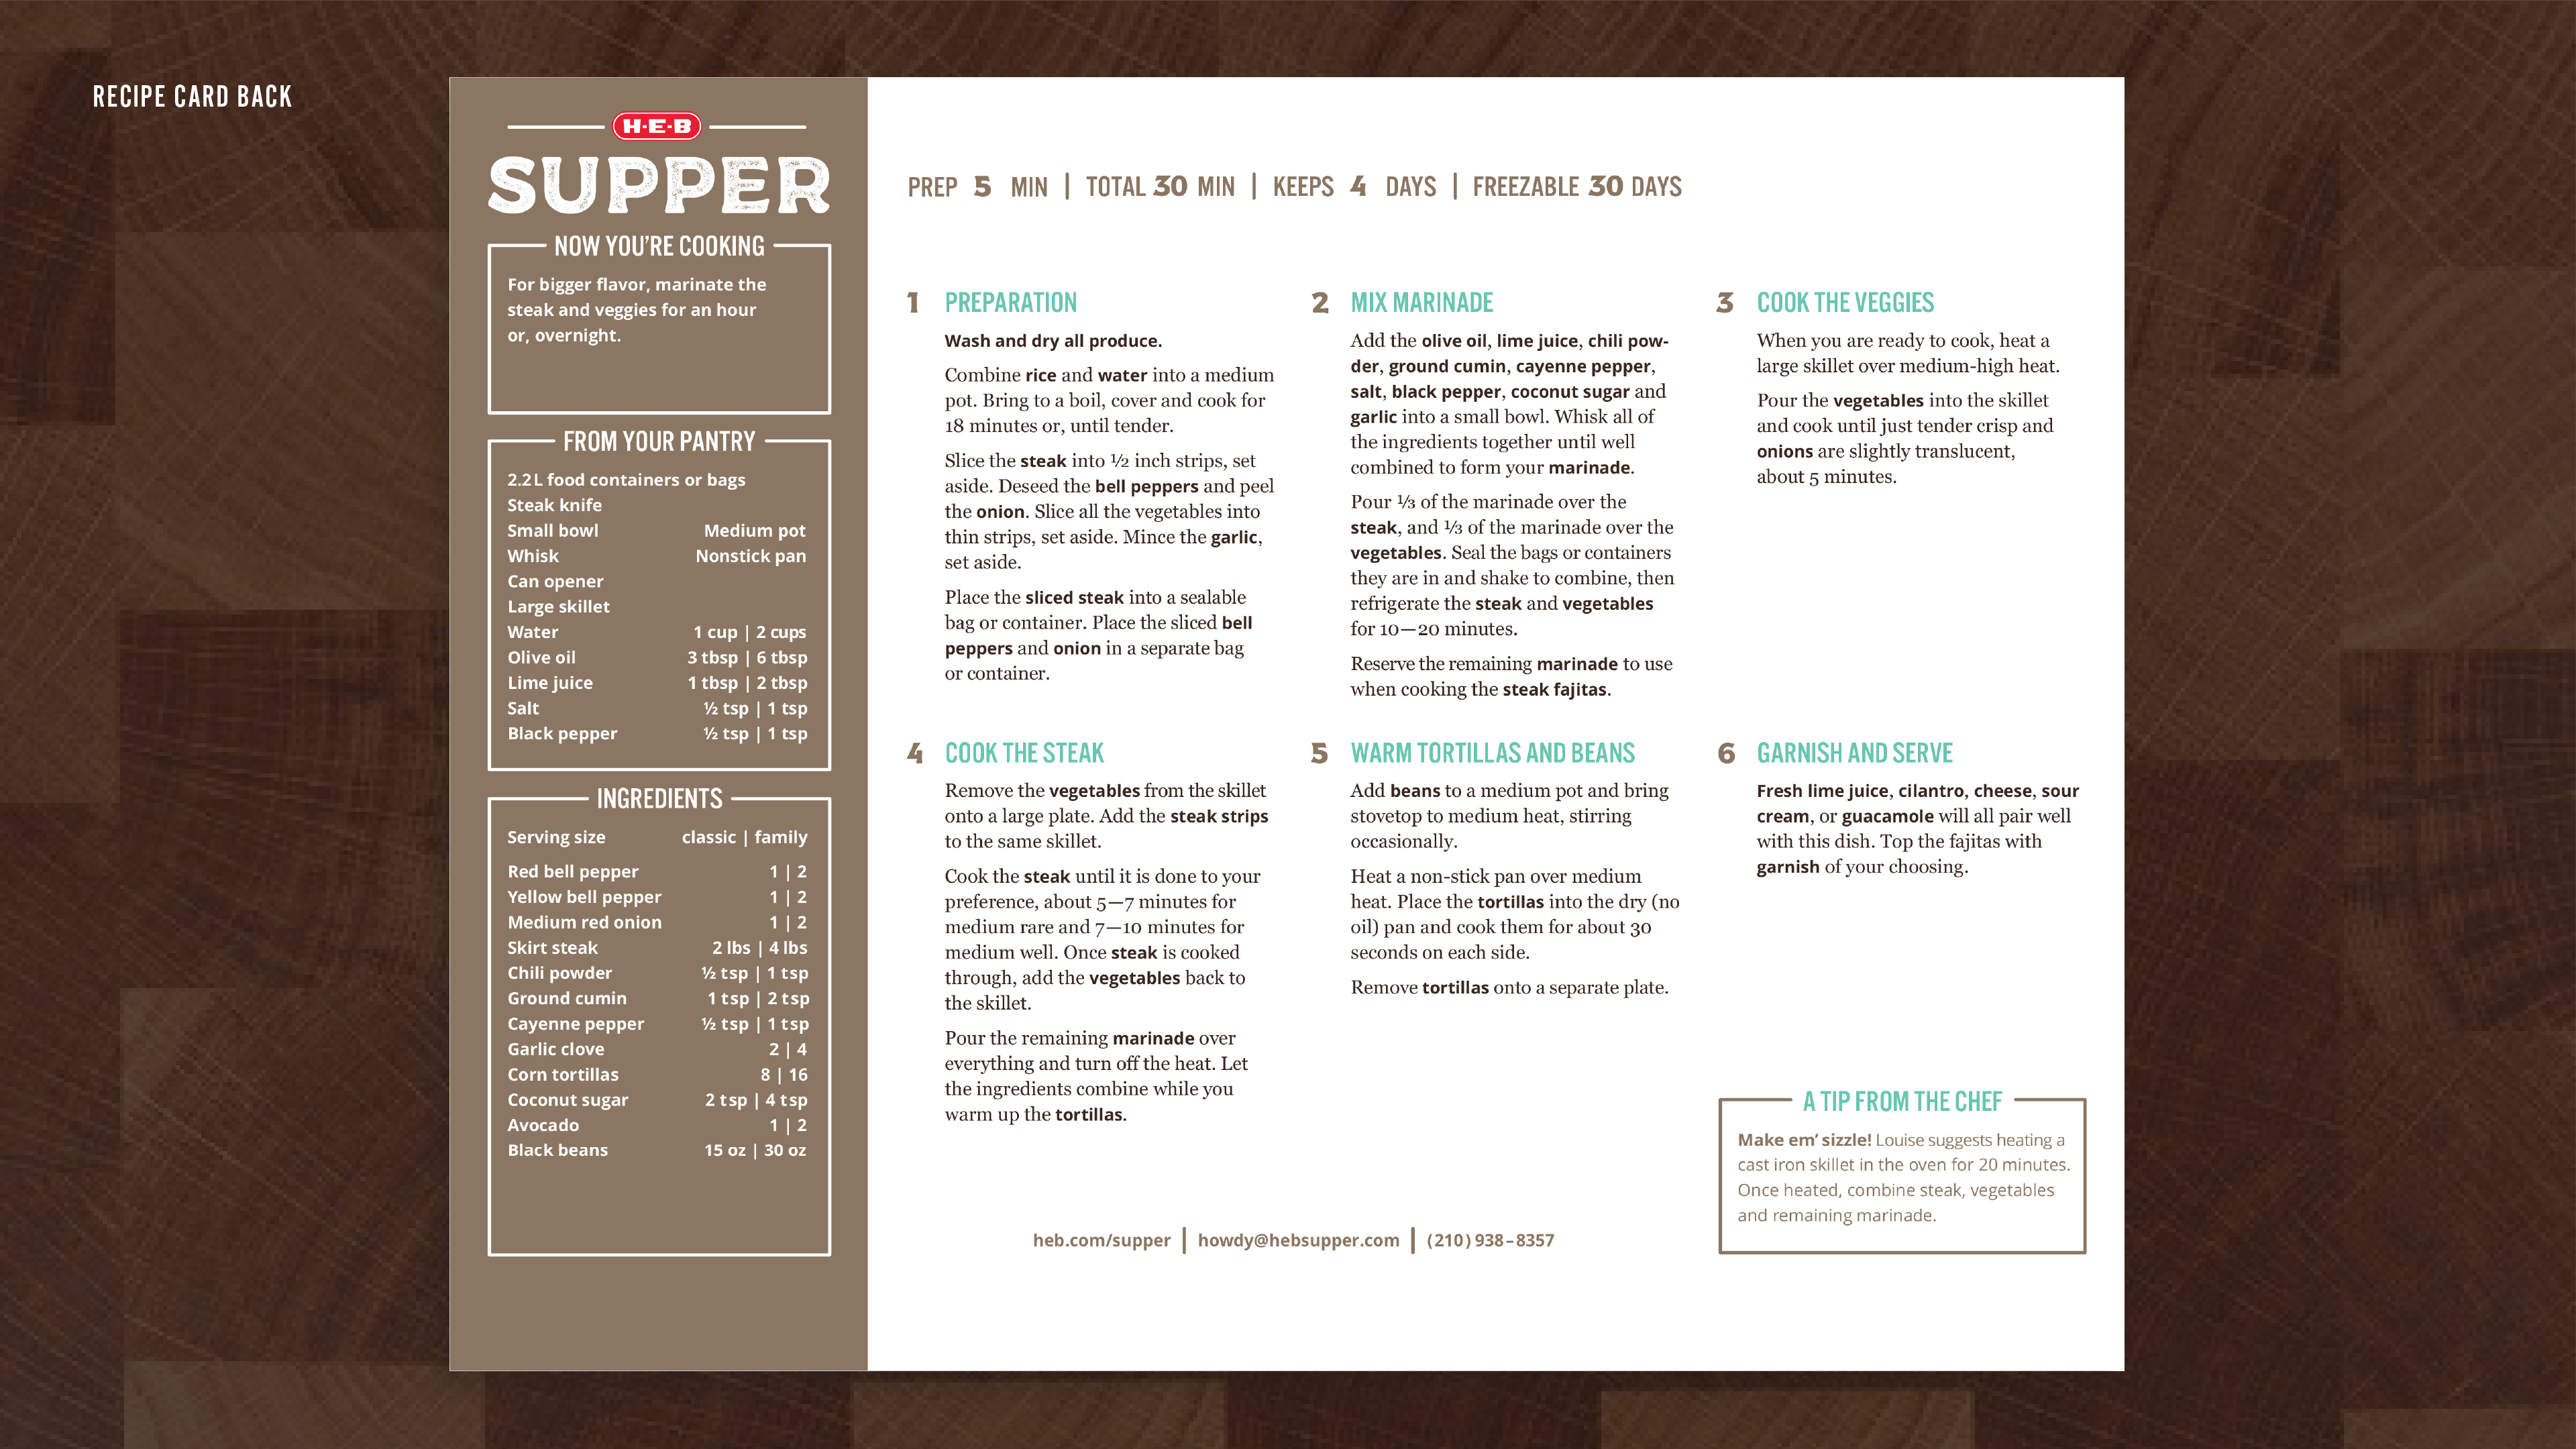 heb_supper_recipe_card_2.0_backArtboard-1-copy-14@2x